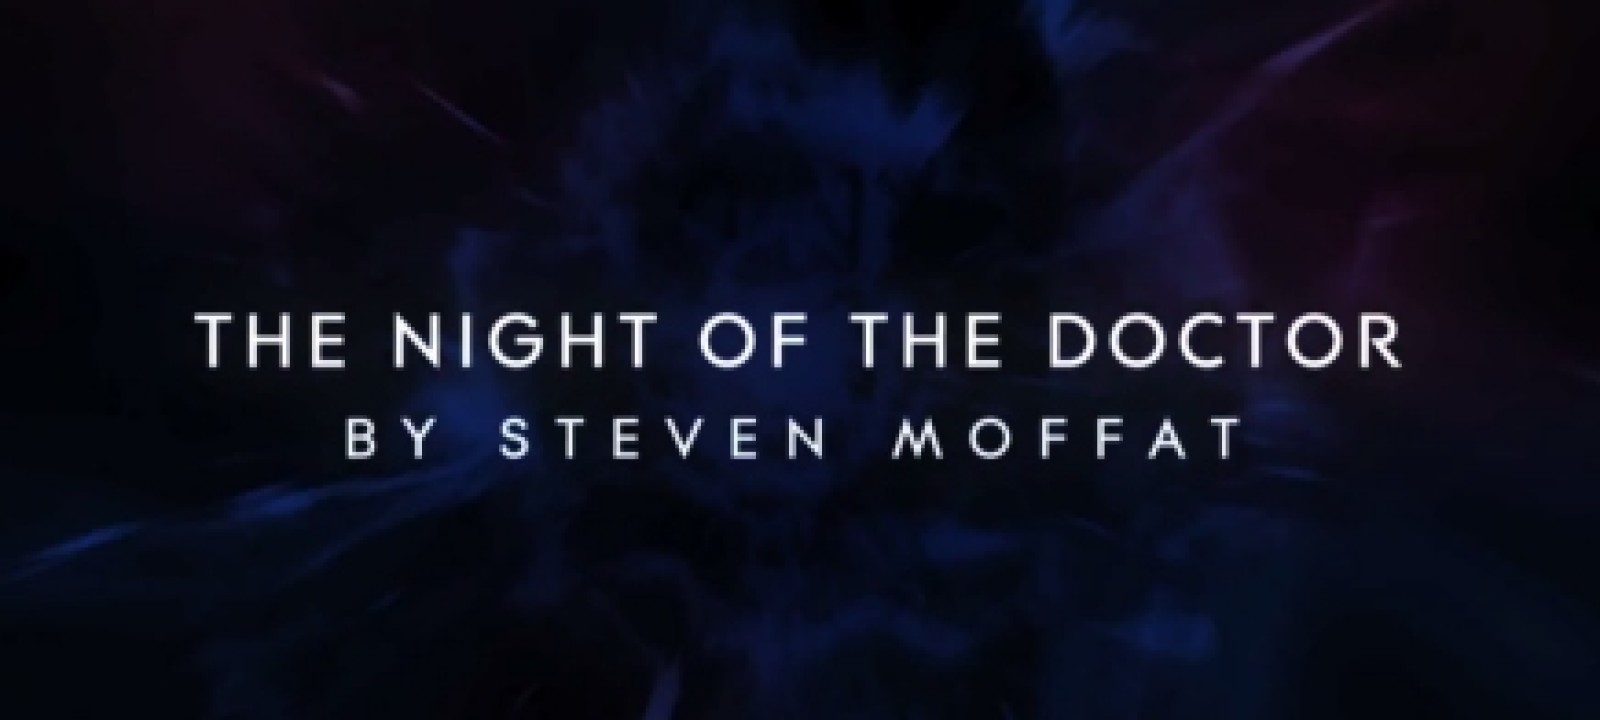 The Night of the Doctor Title Card